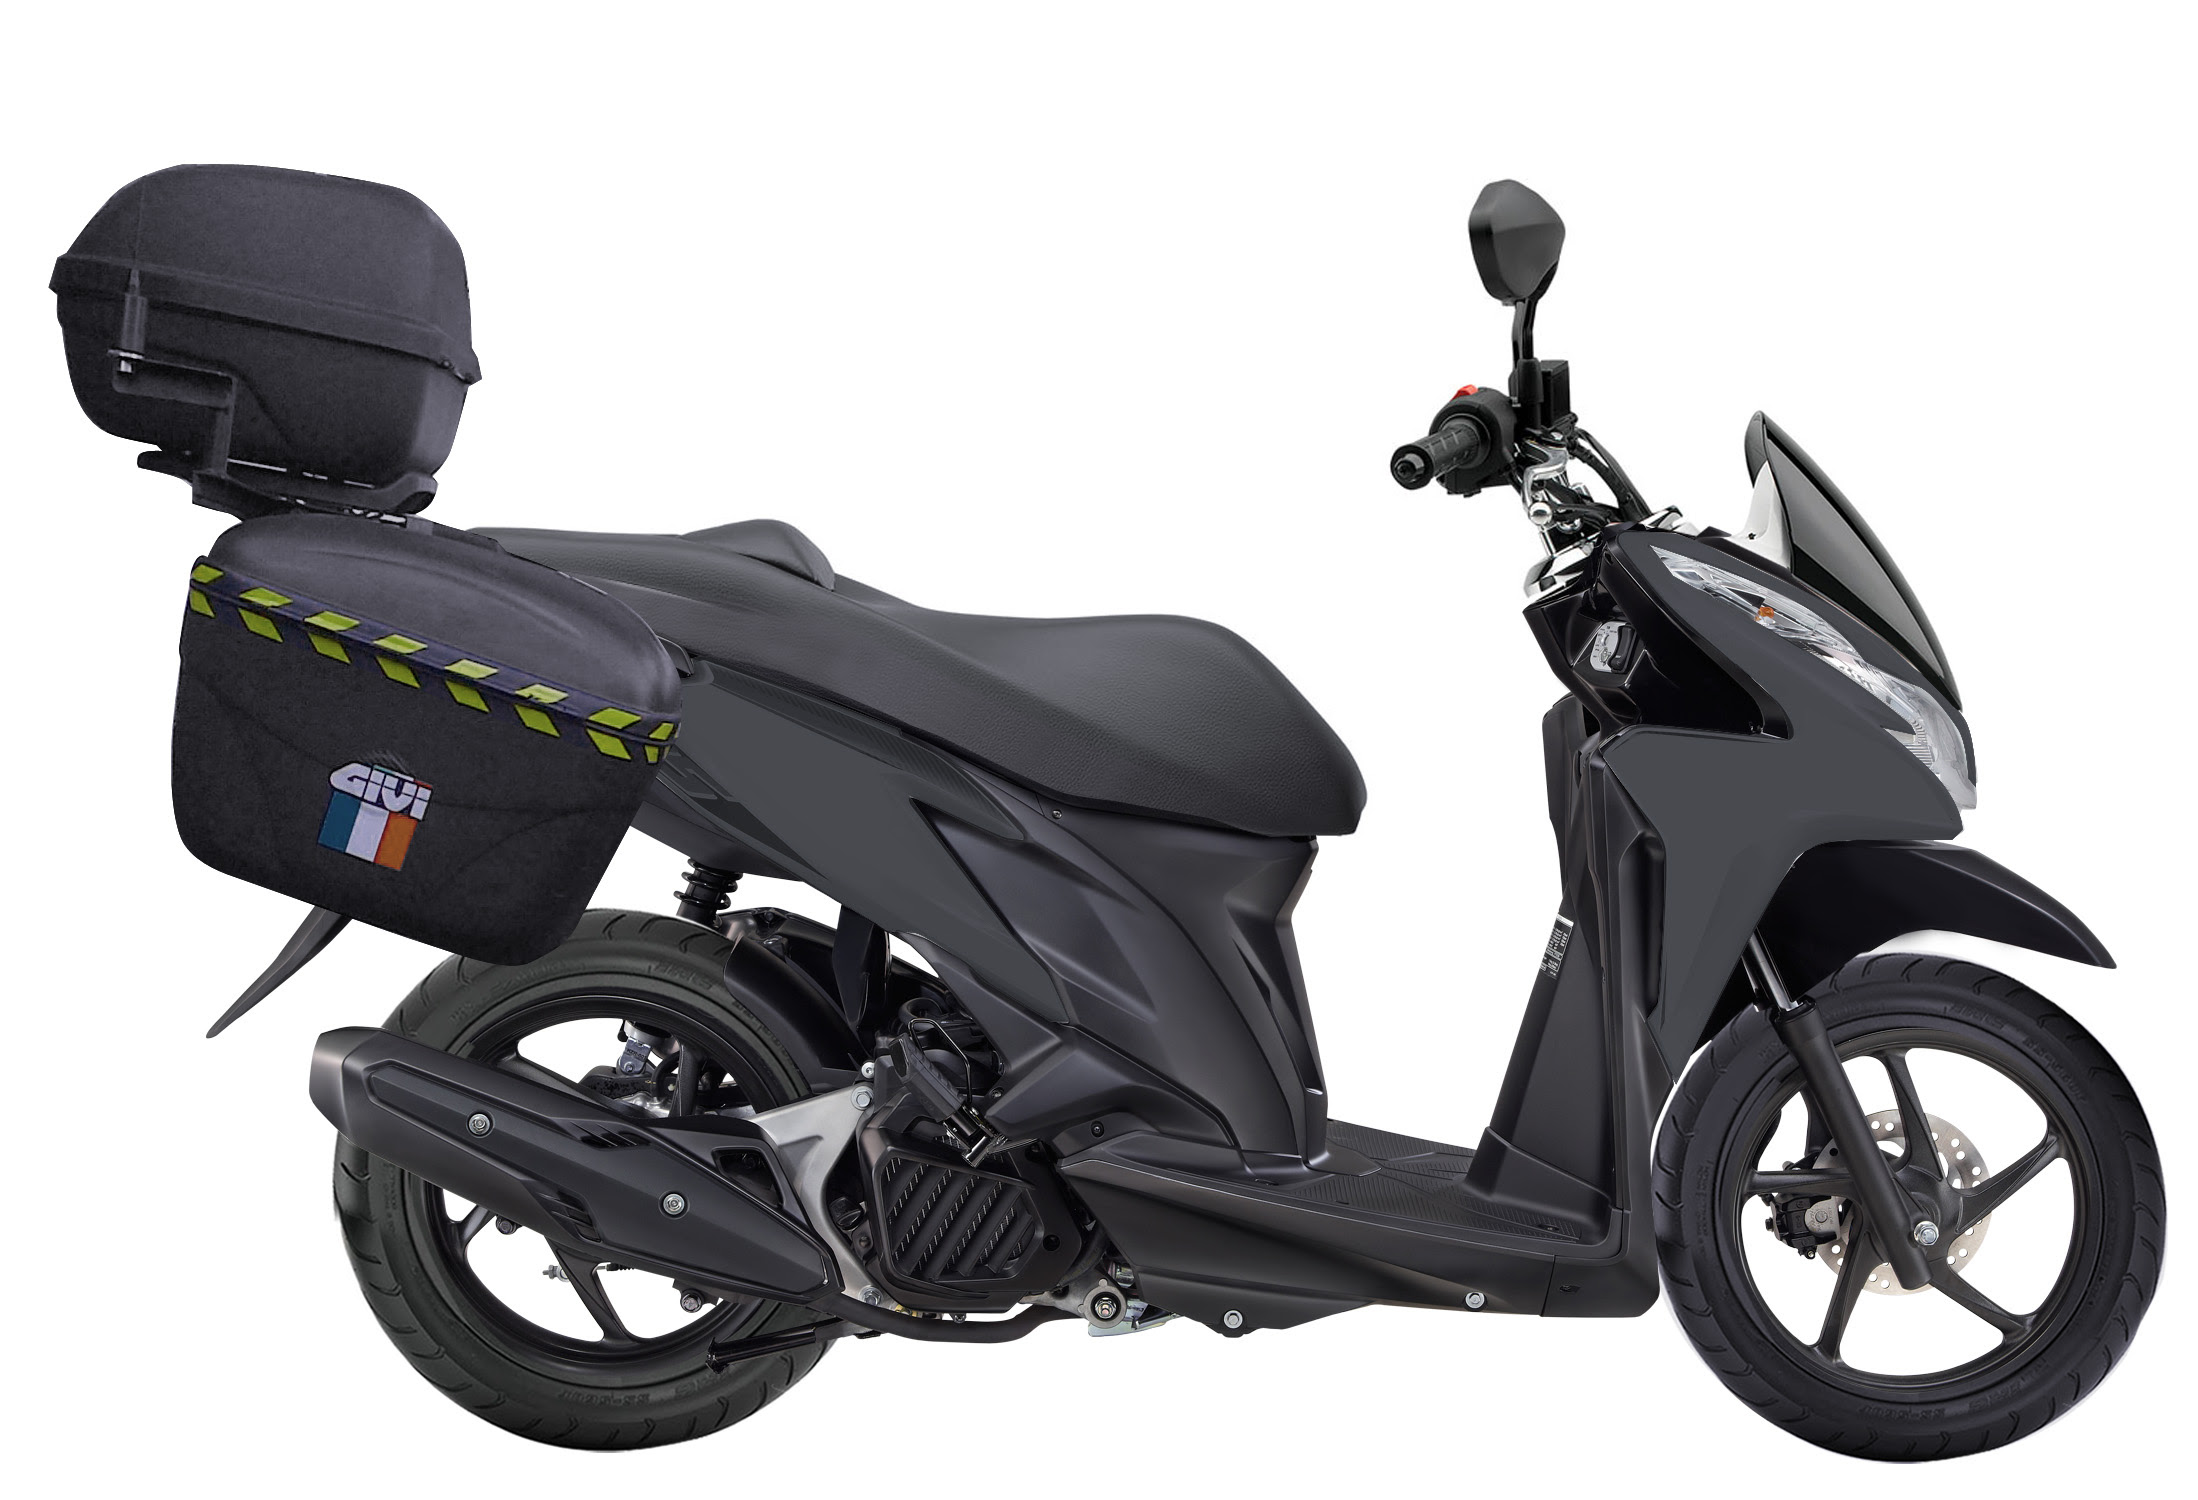 Modif Vario 125 CBS Untuk Touring Model PCX Fushion Model